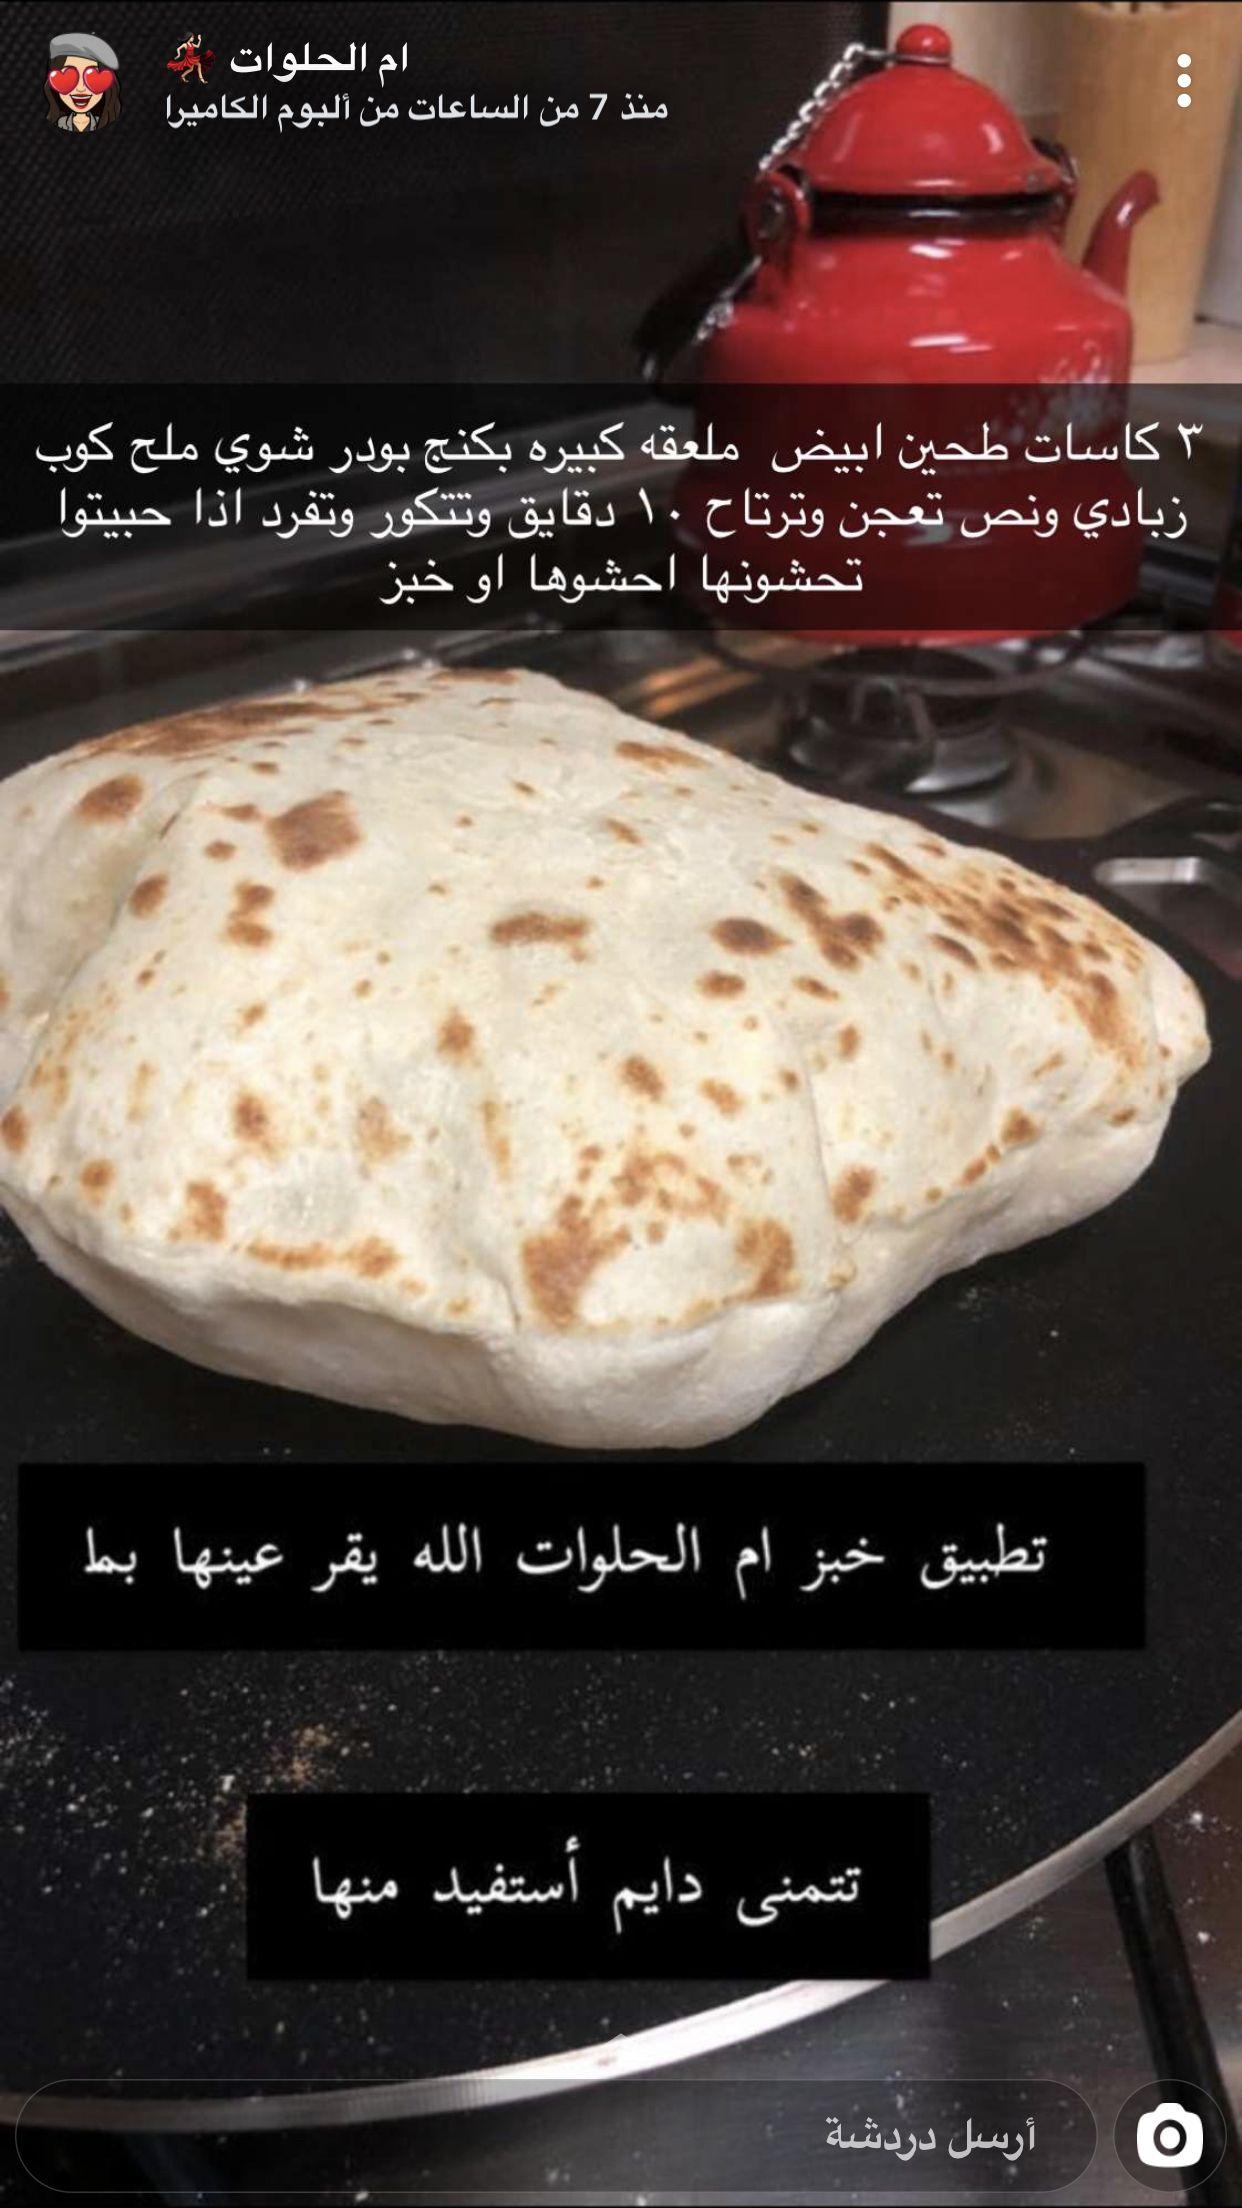 Pin By Hooma Aiysh On Cotton Cooking Recipes Desserts Party Food Dessert Food Receipes